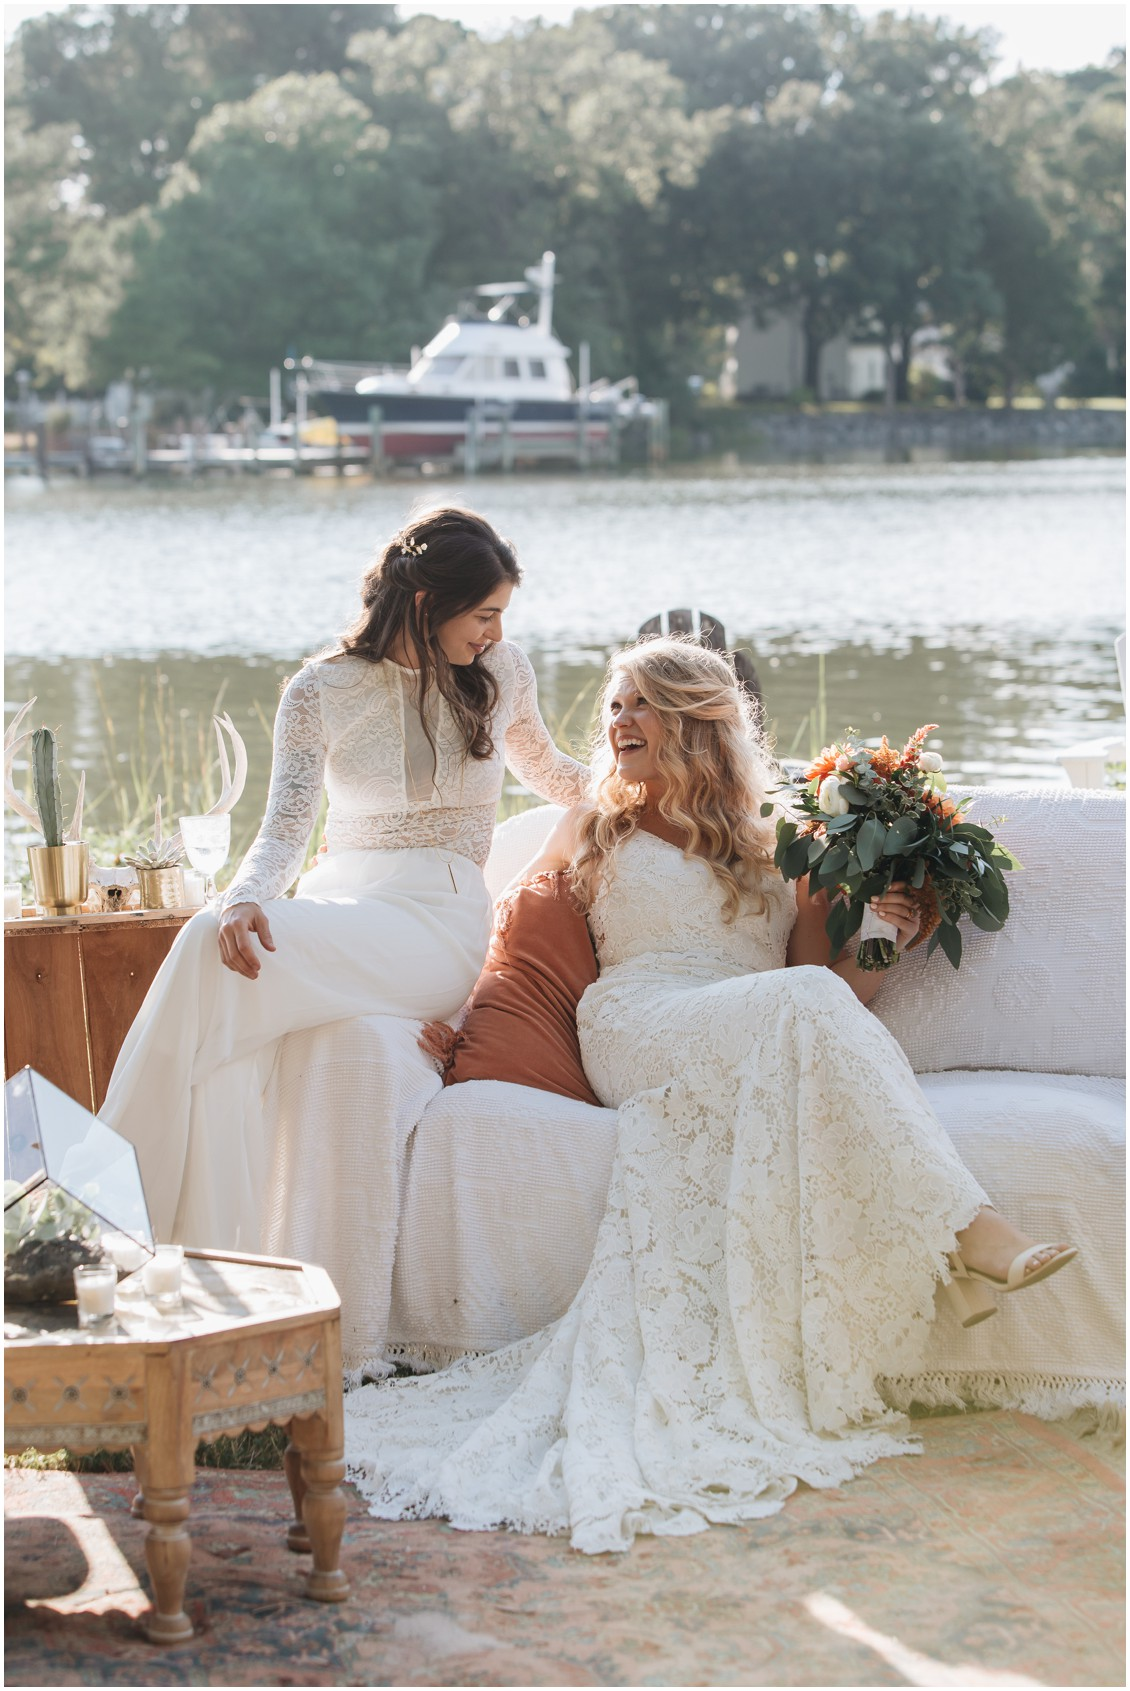 Brides on a sofa with river in the background at beautiful boho bash | My Eastern Shore Wedding | Sherwood Florist | Cecile Storm Photography